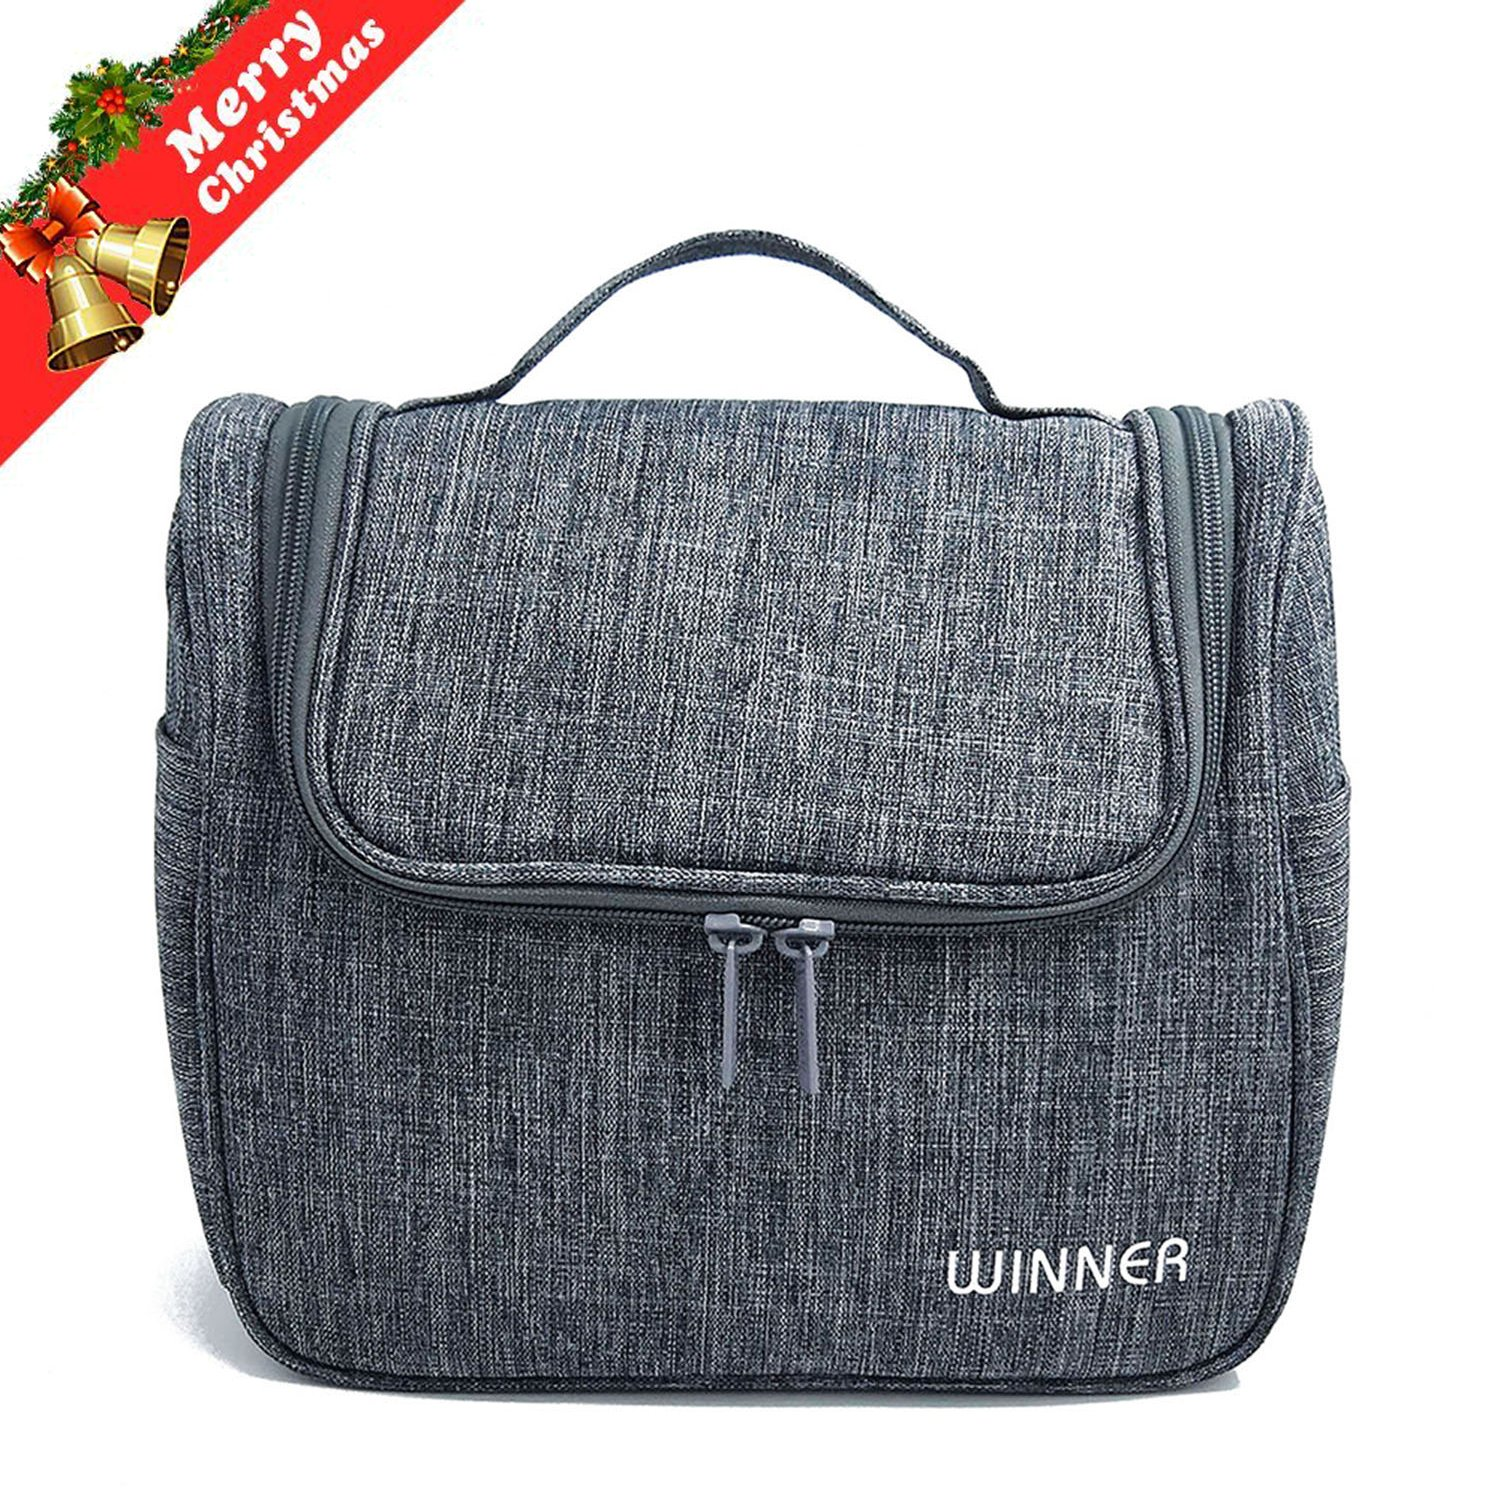 069197df82 Hanging Toiletry Bag - Mens Toiletry Travel Bag - Large Capacity Travel  Accessories